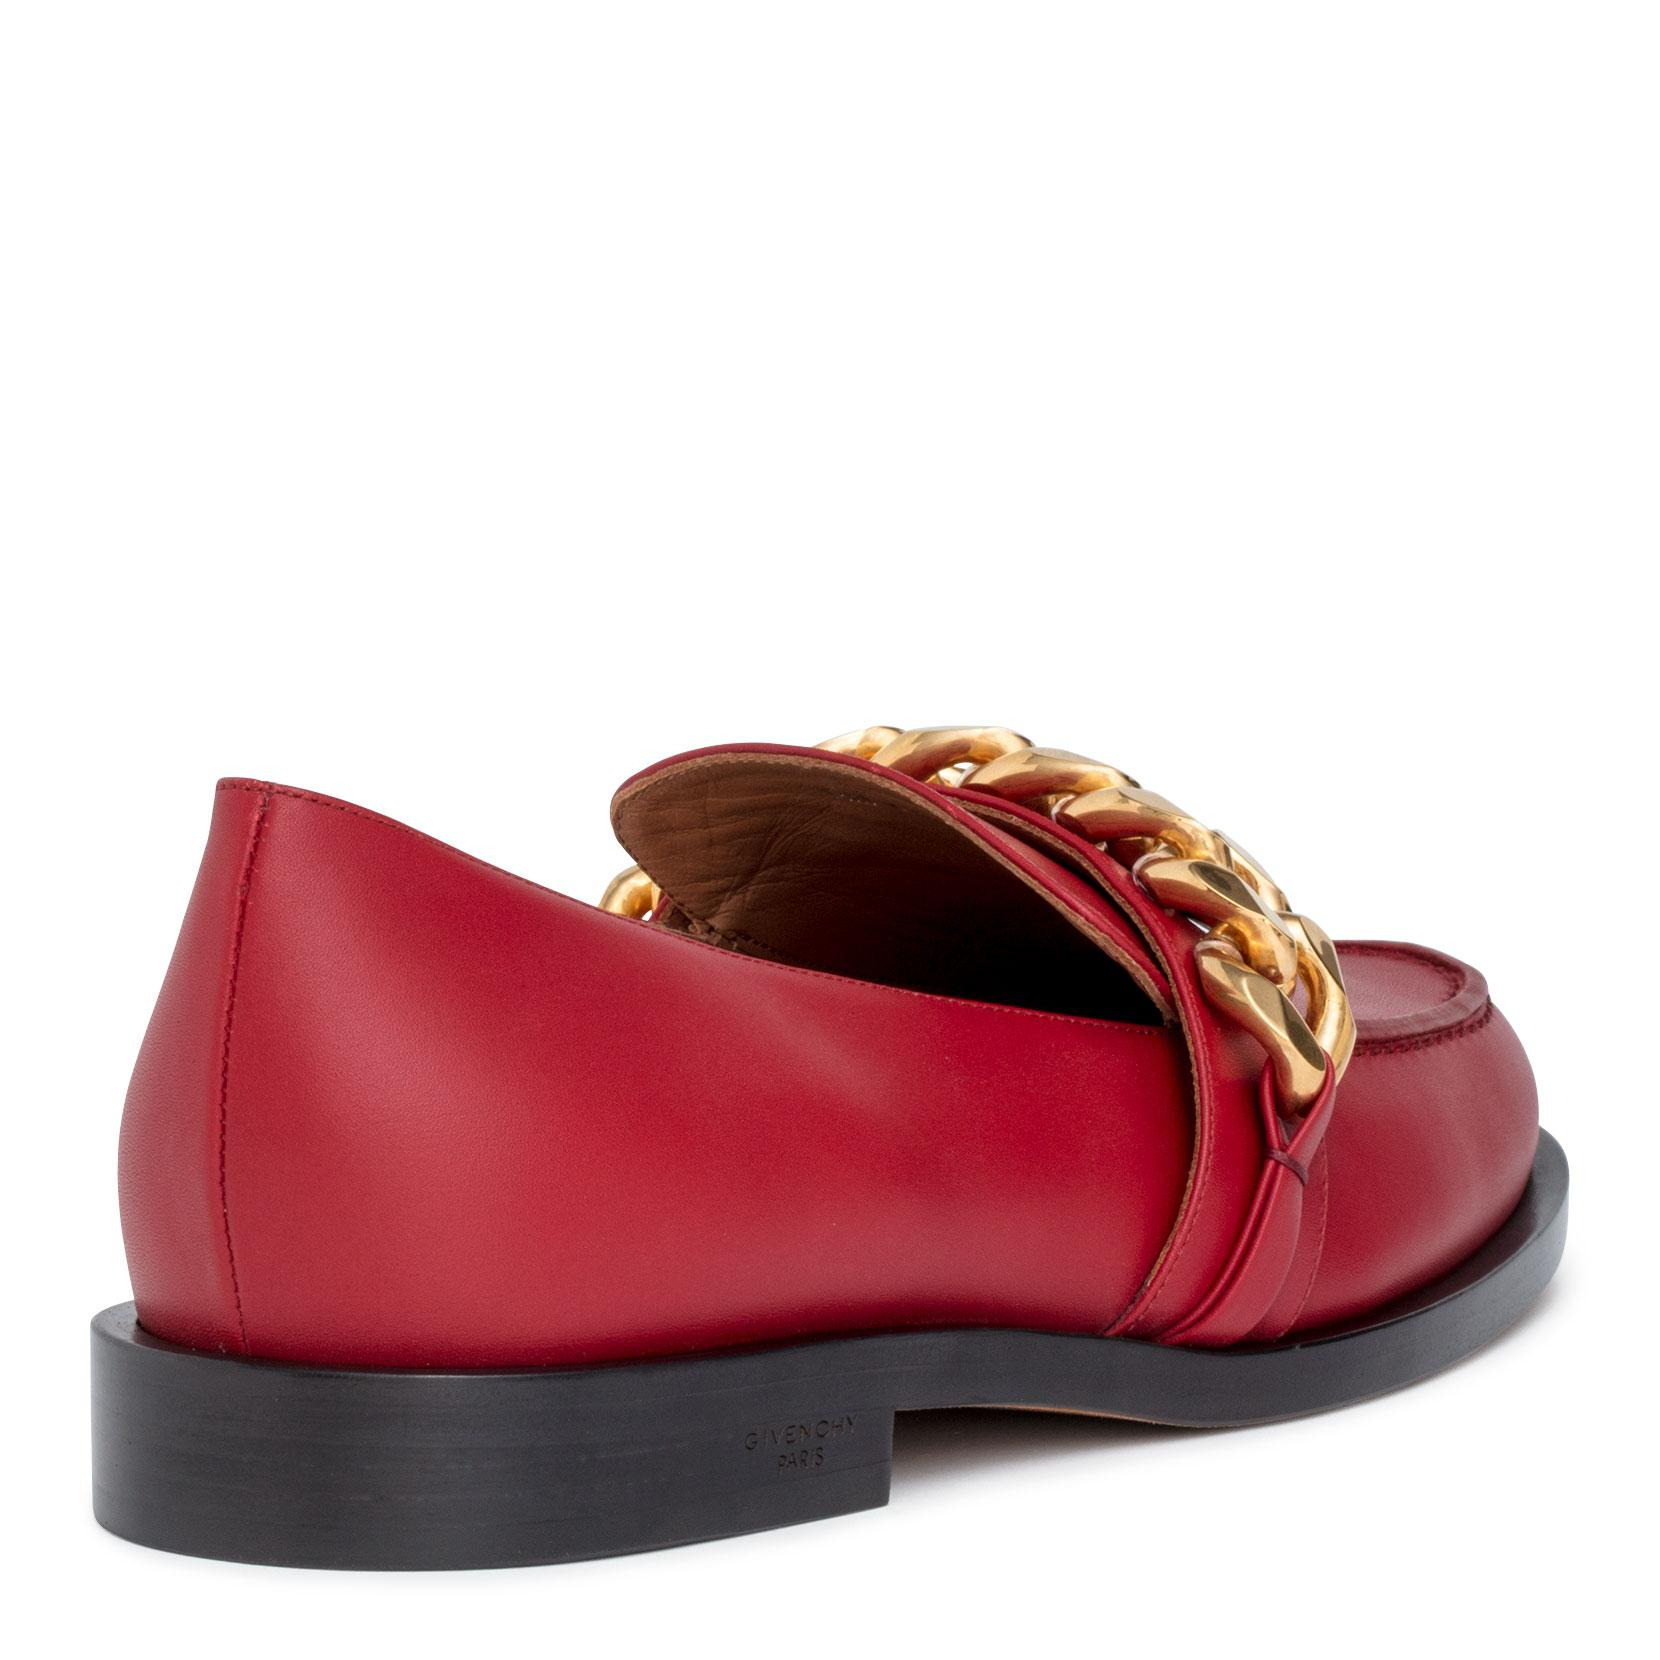 Red leather chain loafer Givenchy 5XWif0Cs